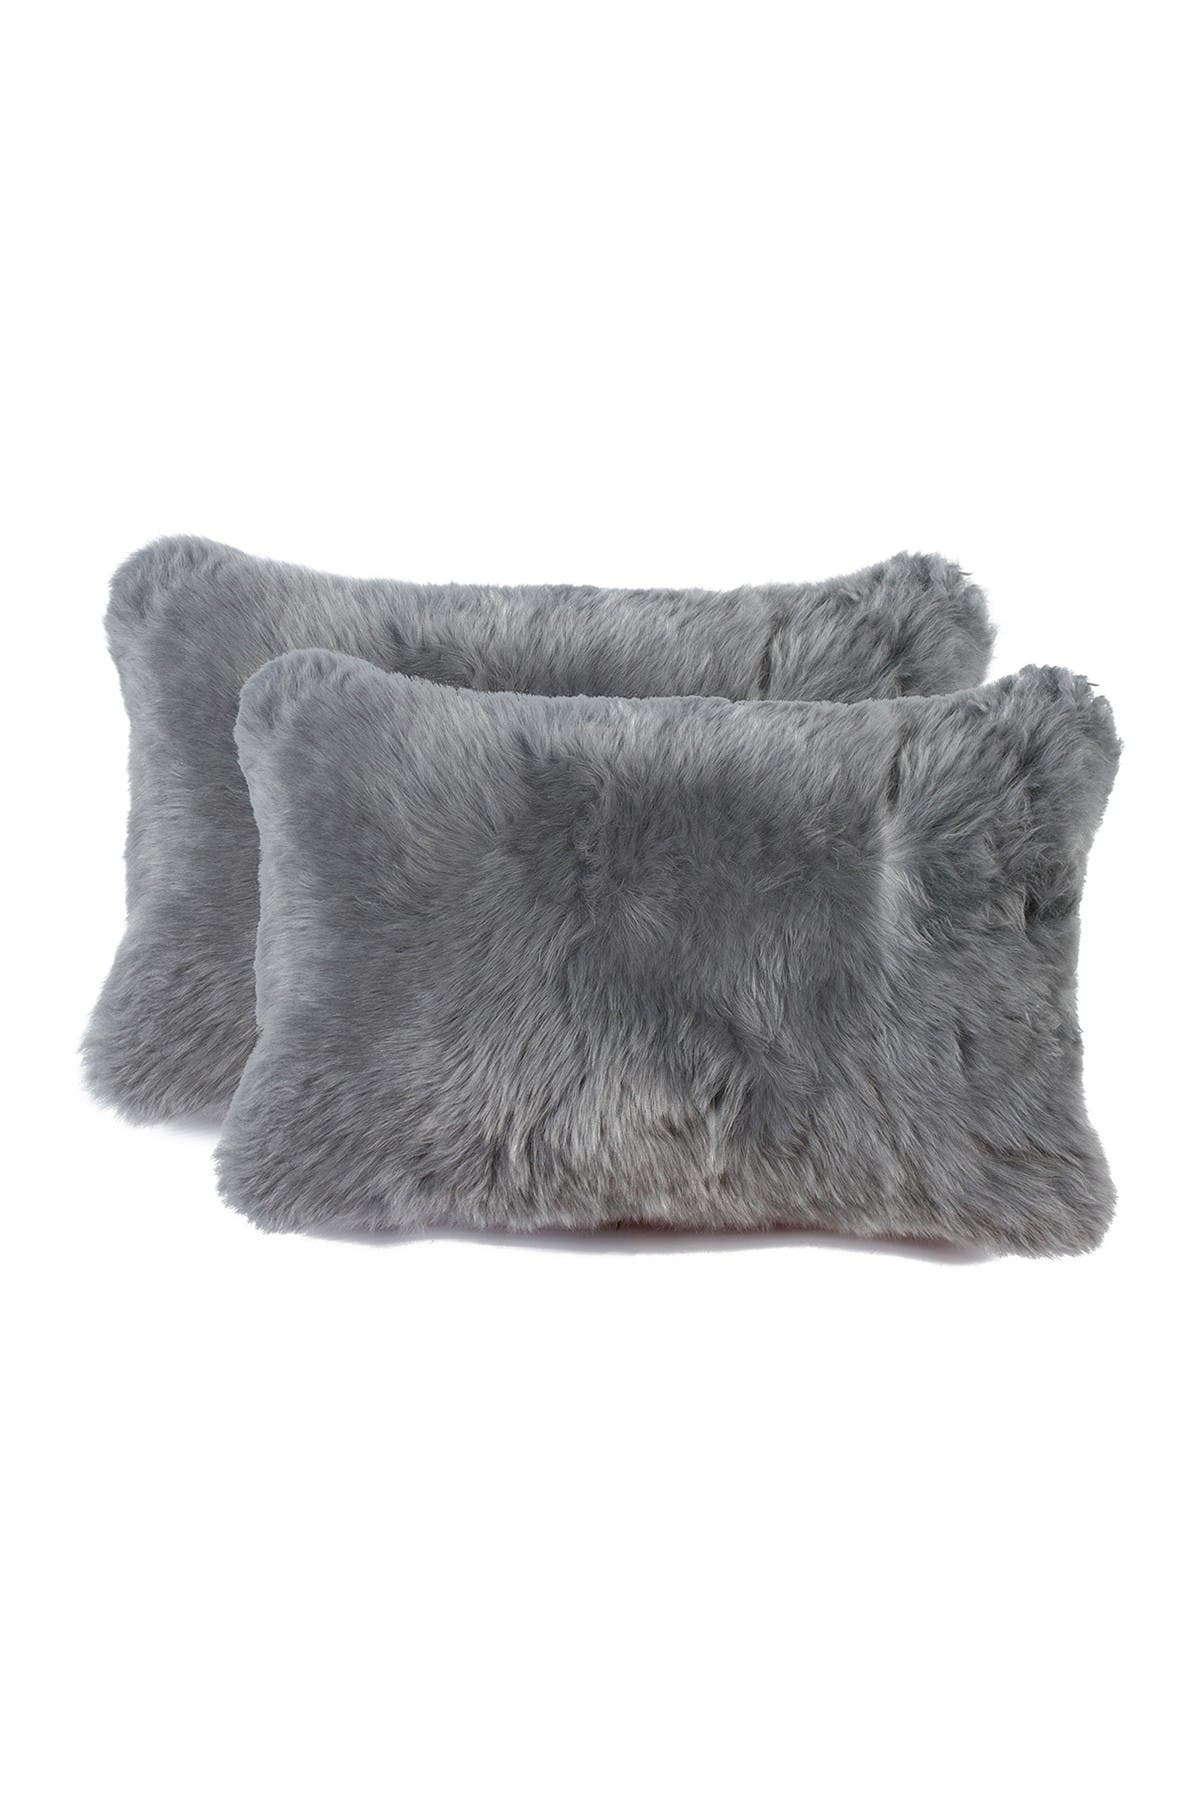 Image of Natural New Zealand 12x20 Genuine Sheepskin Pillow - Set of 2 - Gray